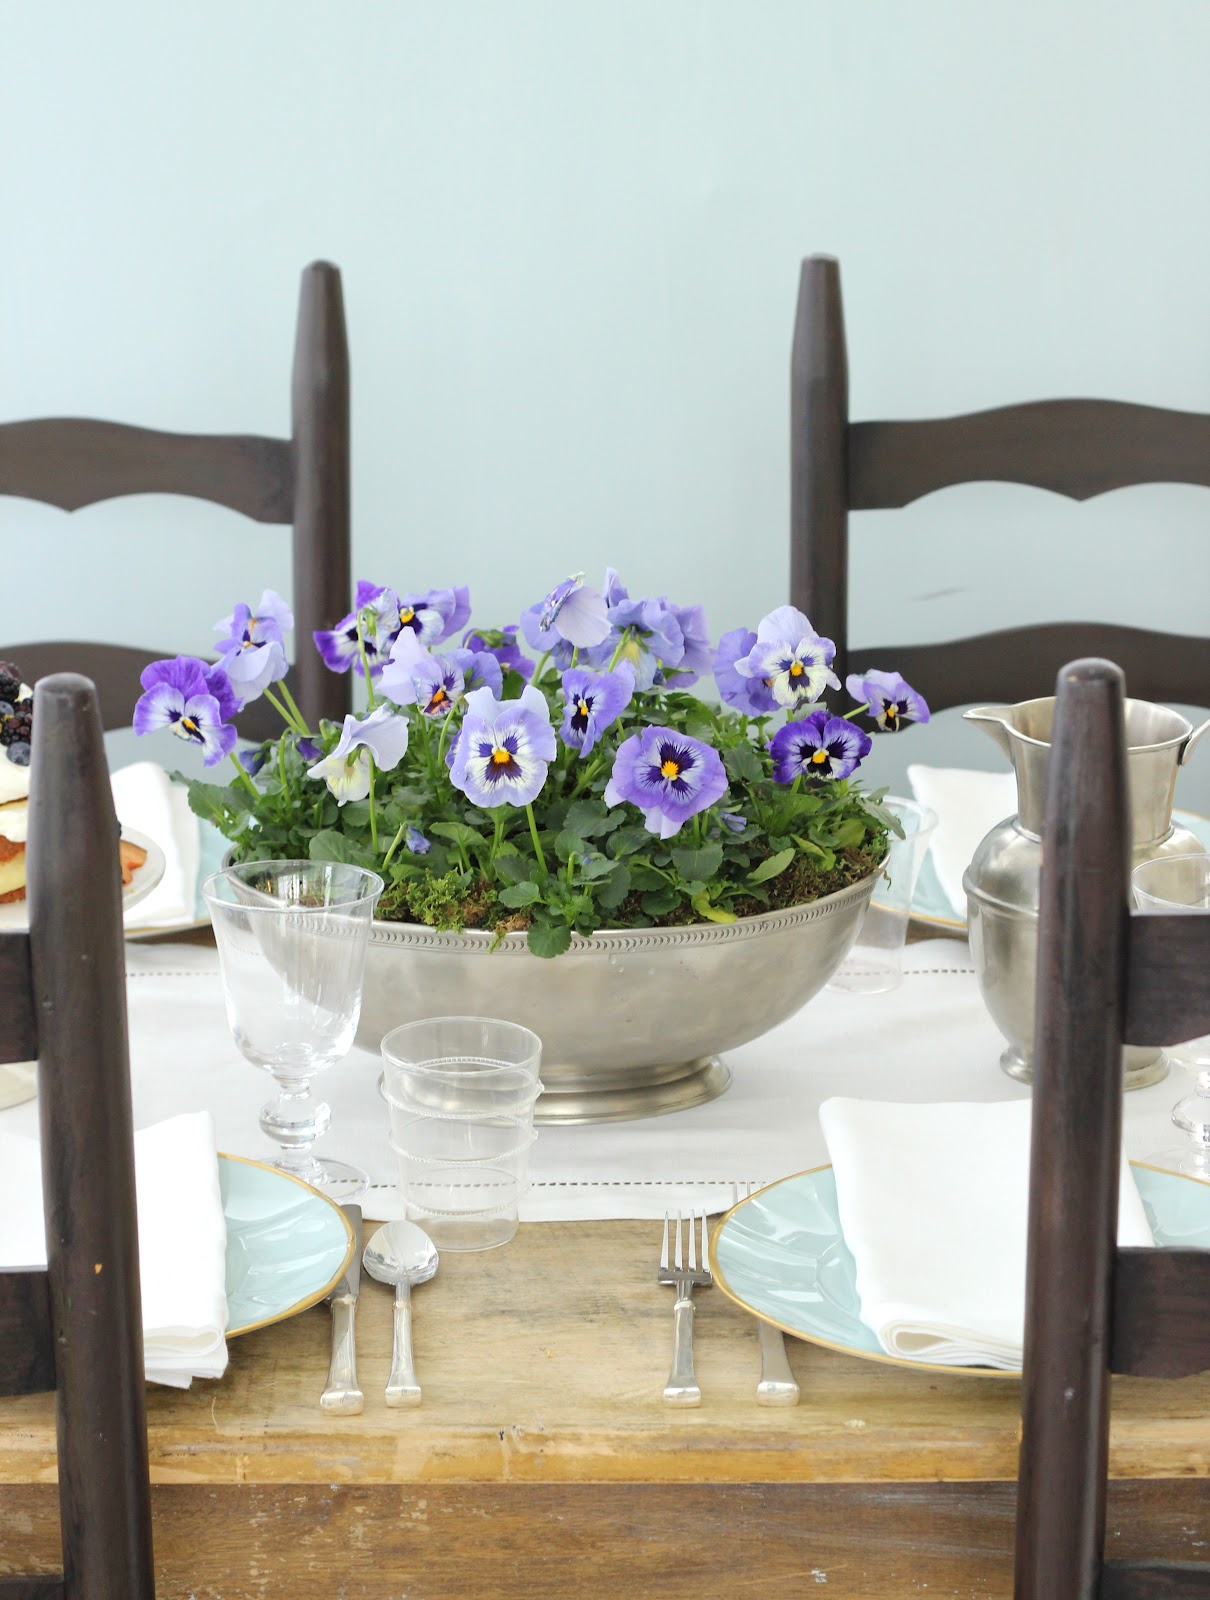 Jenny steffens hobick planted pansies centerpiece